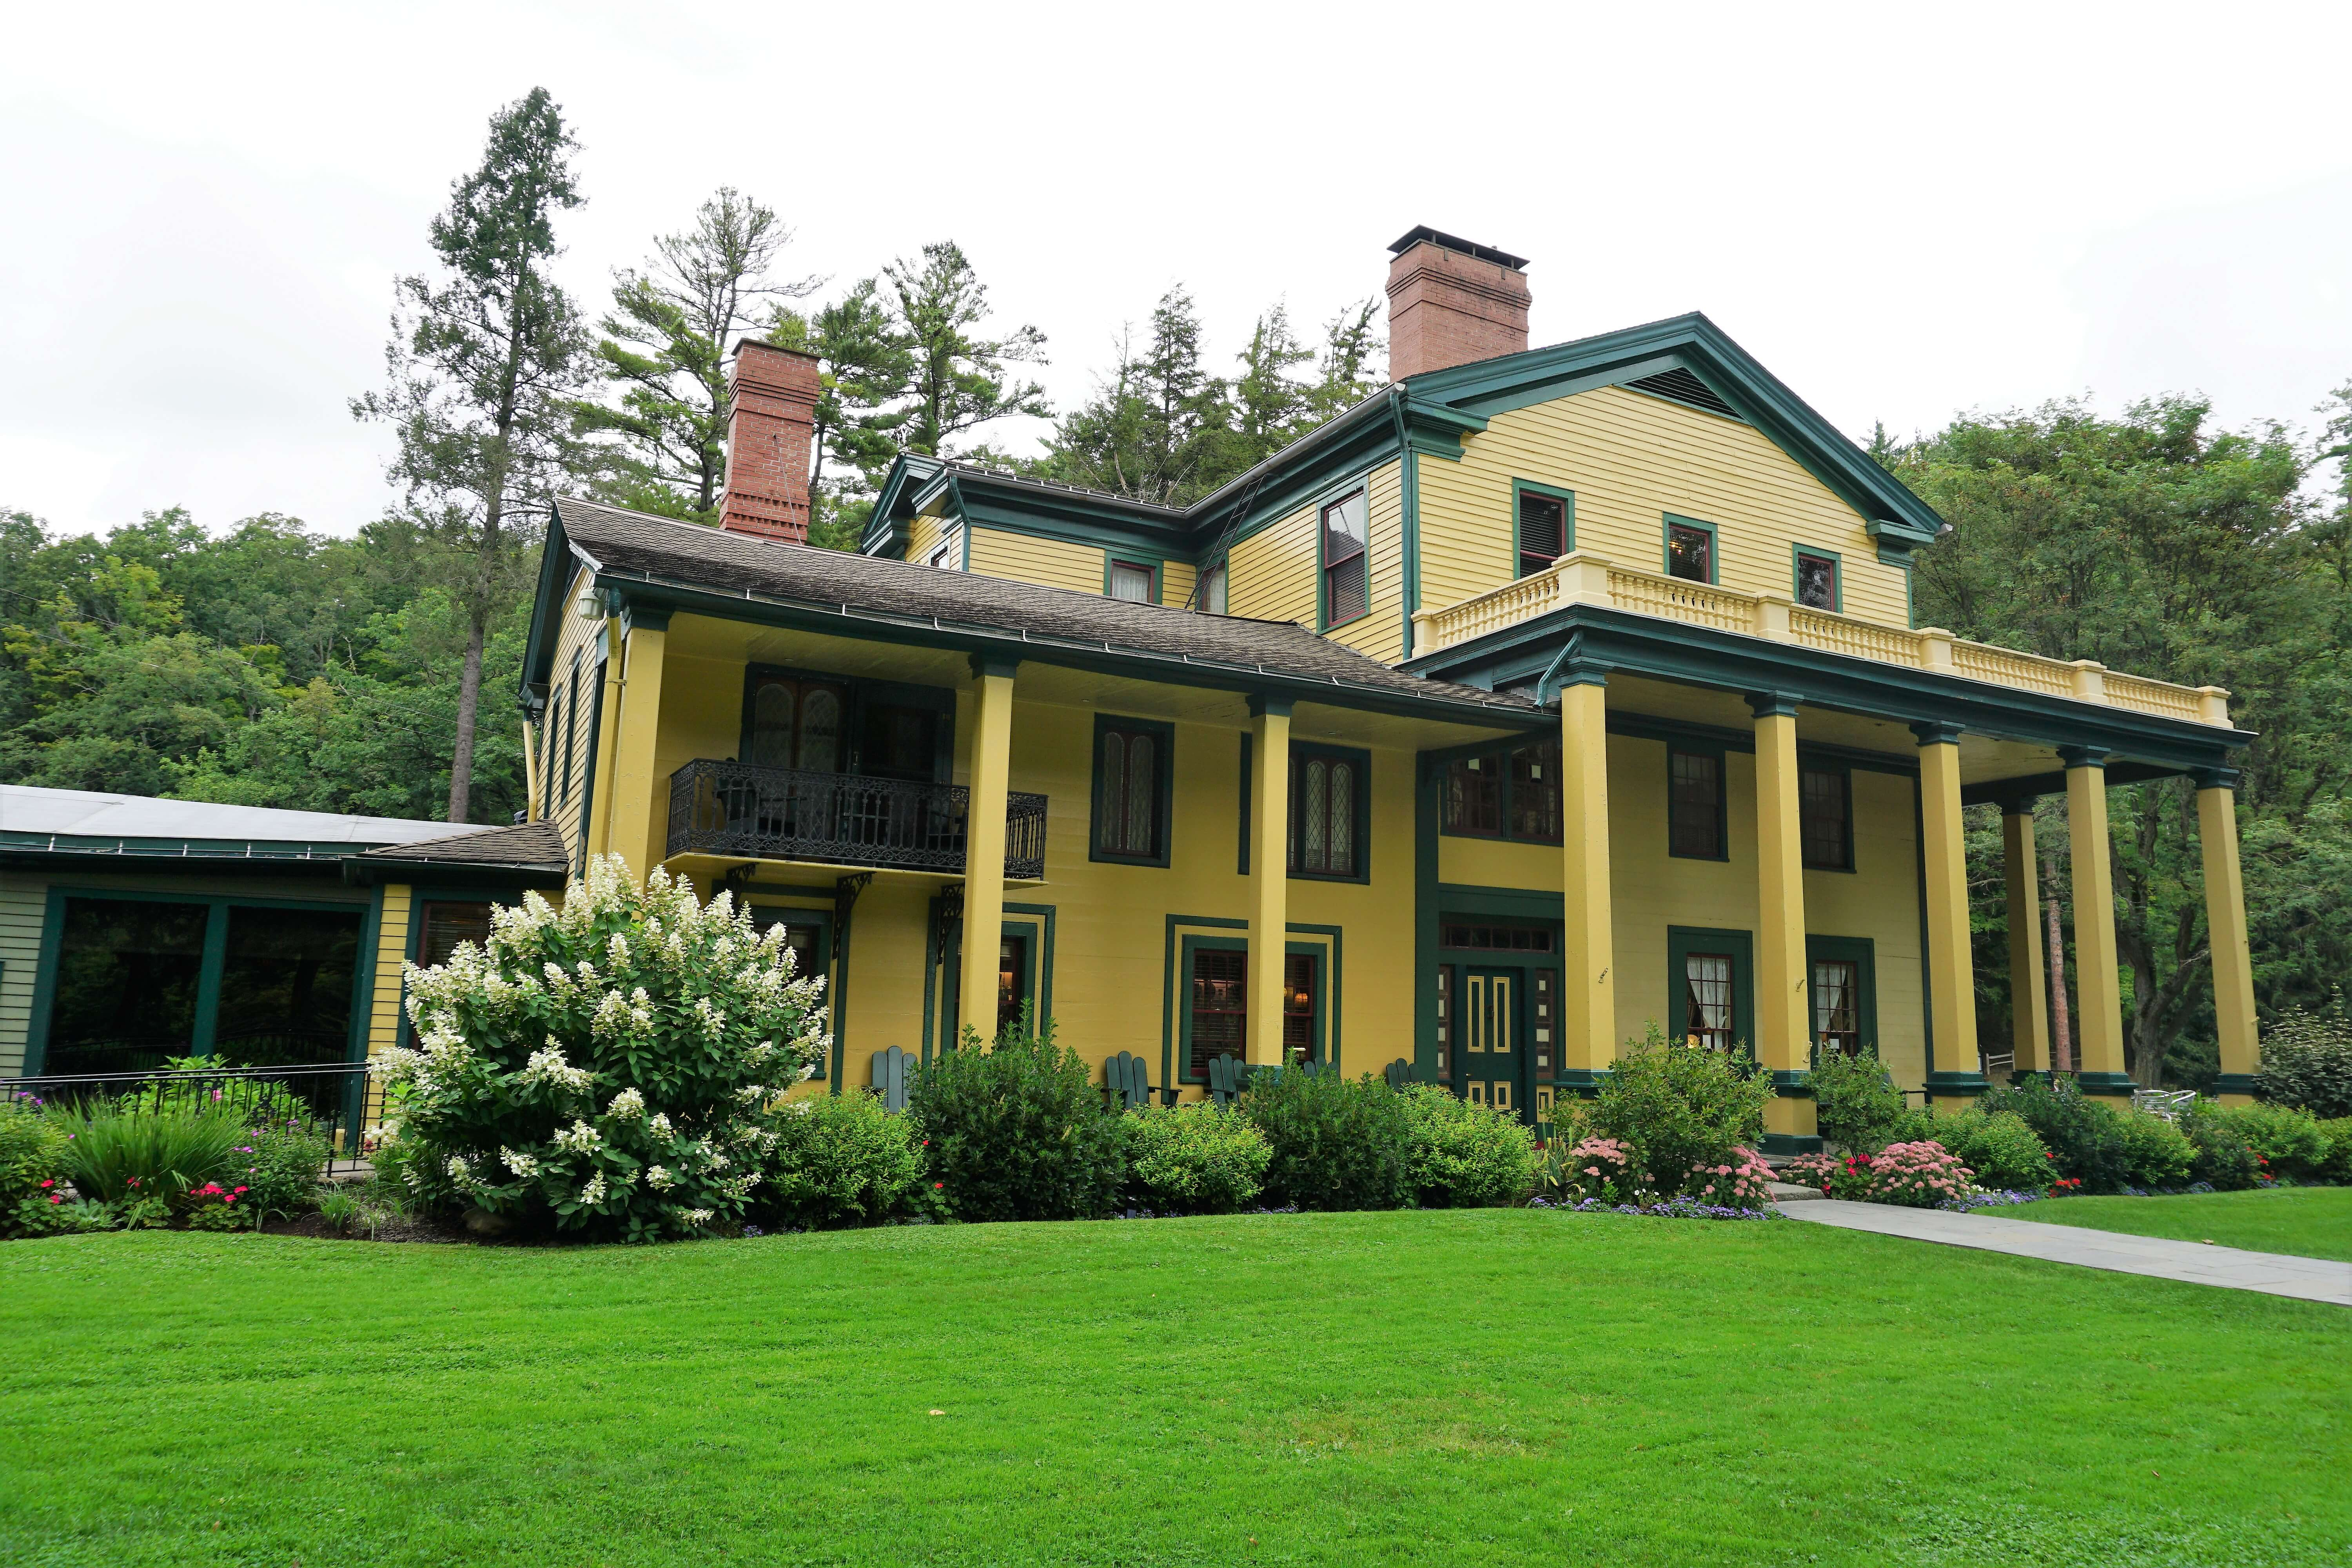 Finger Lakes hiking--Glen Iris Inn at Letchworth State Park